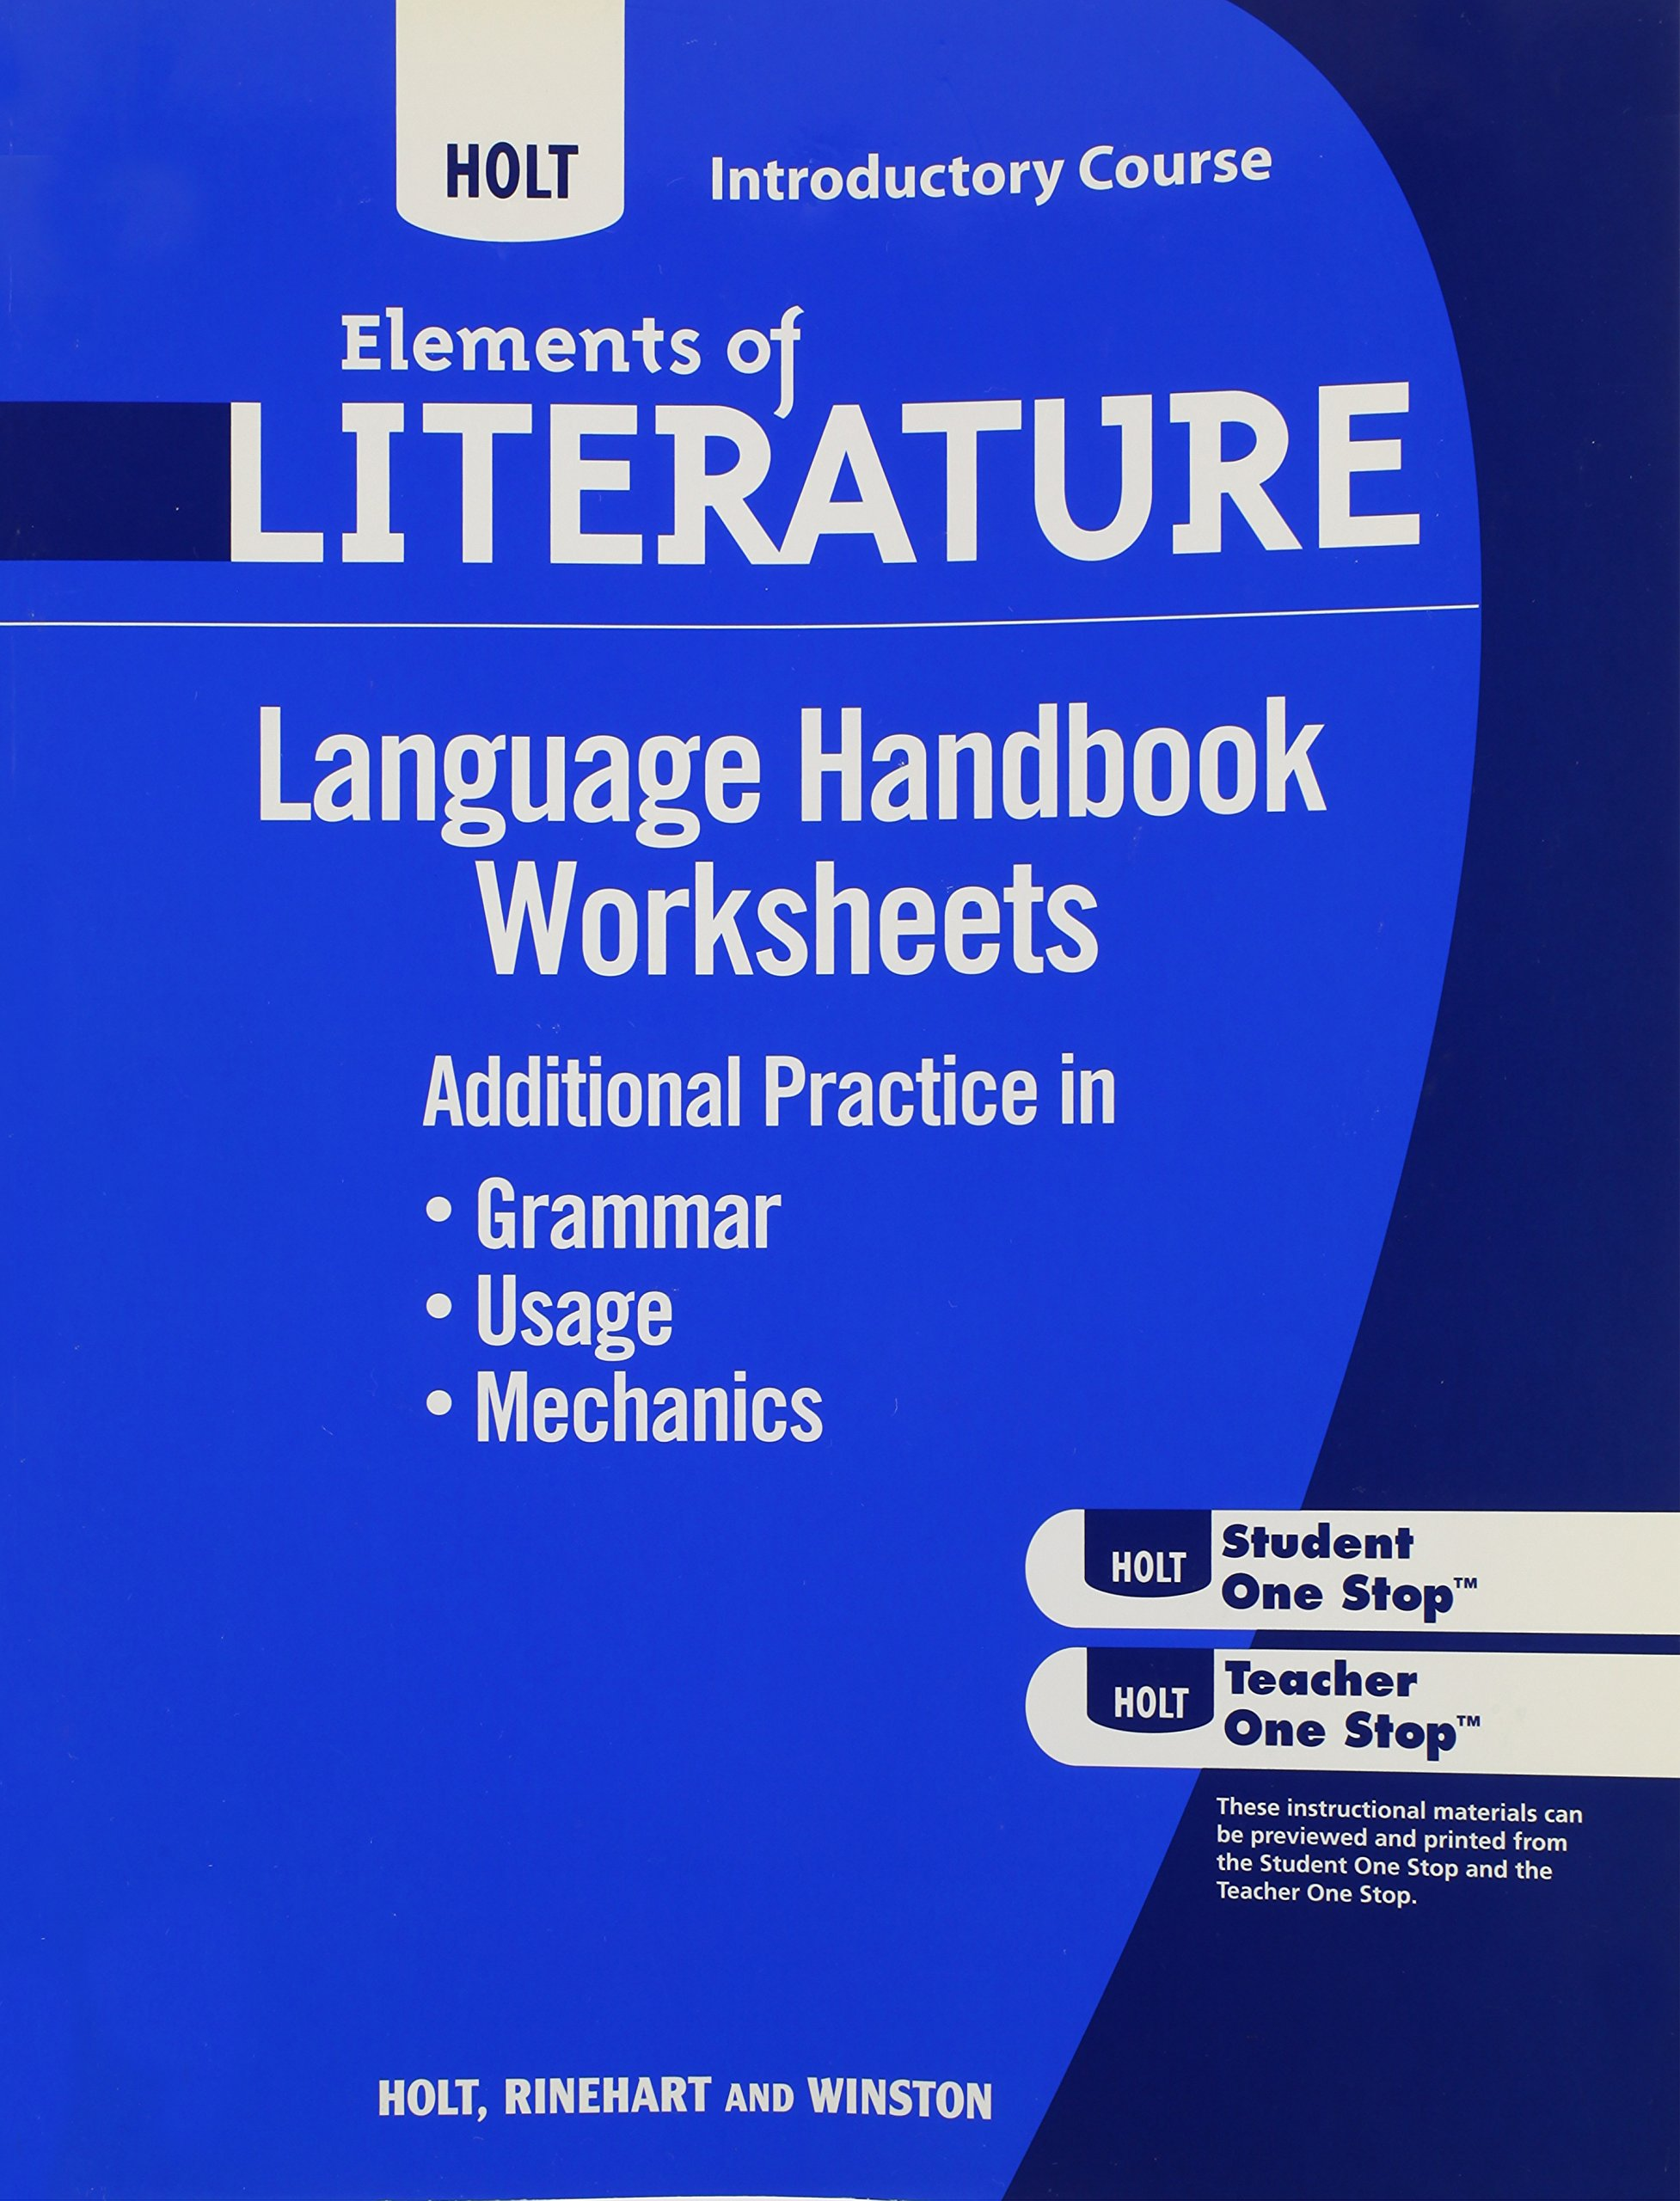 Language Handbook Worksheets Isbn 0554008645 Holt Elements Of Literature Introductory Course Amazon Com Books [ 2560 x 1954 Pixel ]